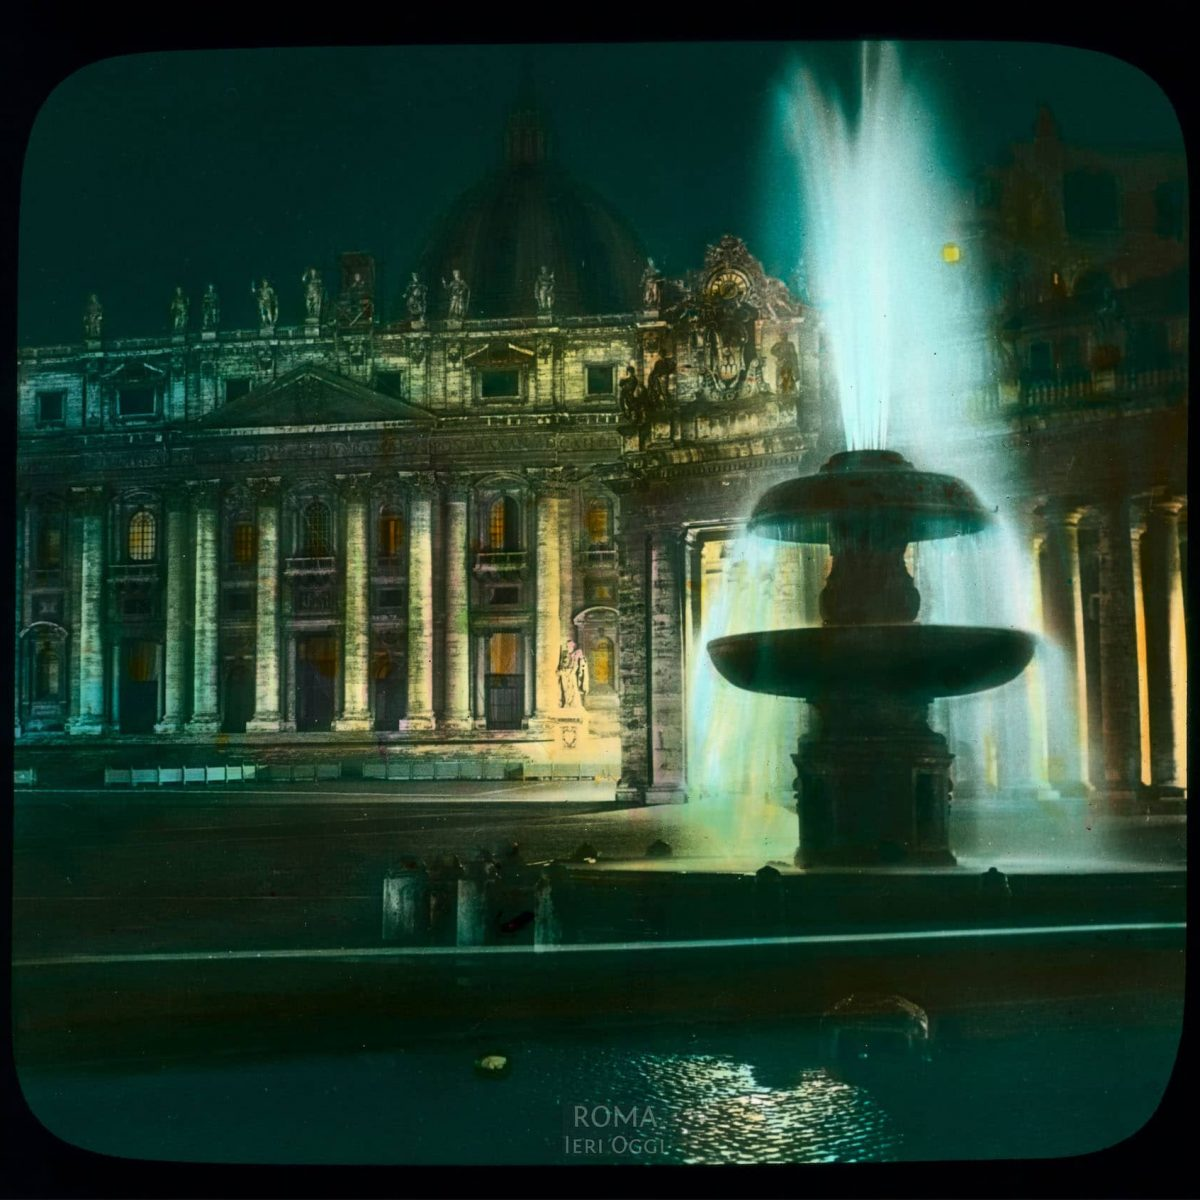 Vatican City. St. Peter's Basilica: facade on Piazza San Pietro, at night, with fountain View in tinted lantern slide, ca. 1919-1938. The basilica dates from ca. 1506-1626.